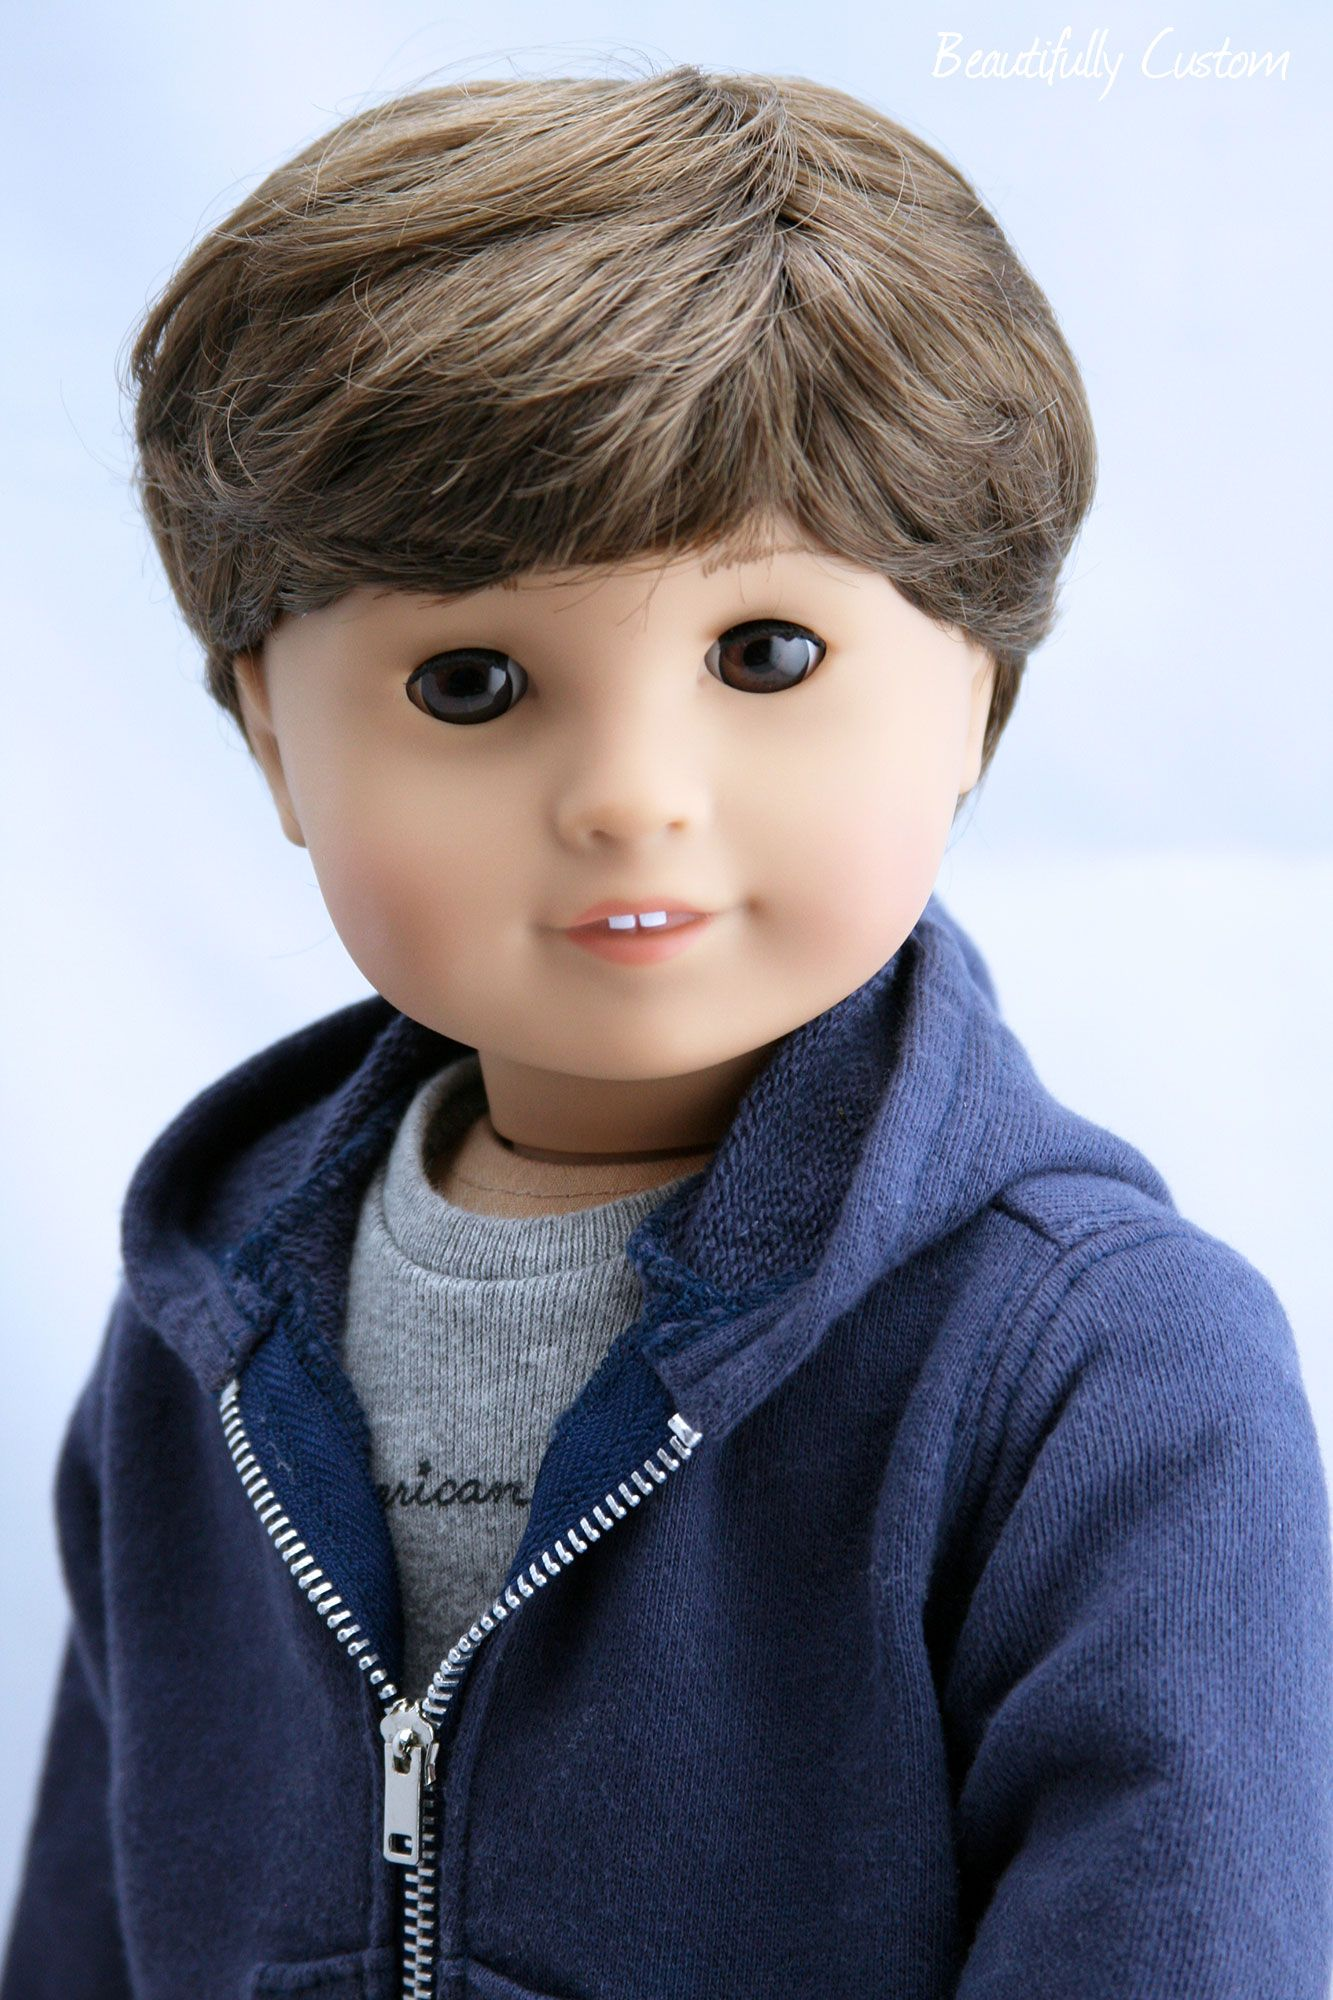 6ac9256c25341 Custom OOAK American Girl Doll BOY ~ Brown Hair and Eyes - Jess with ...